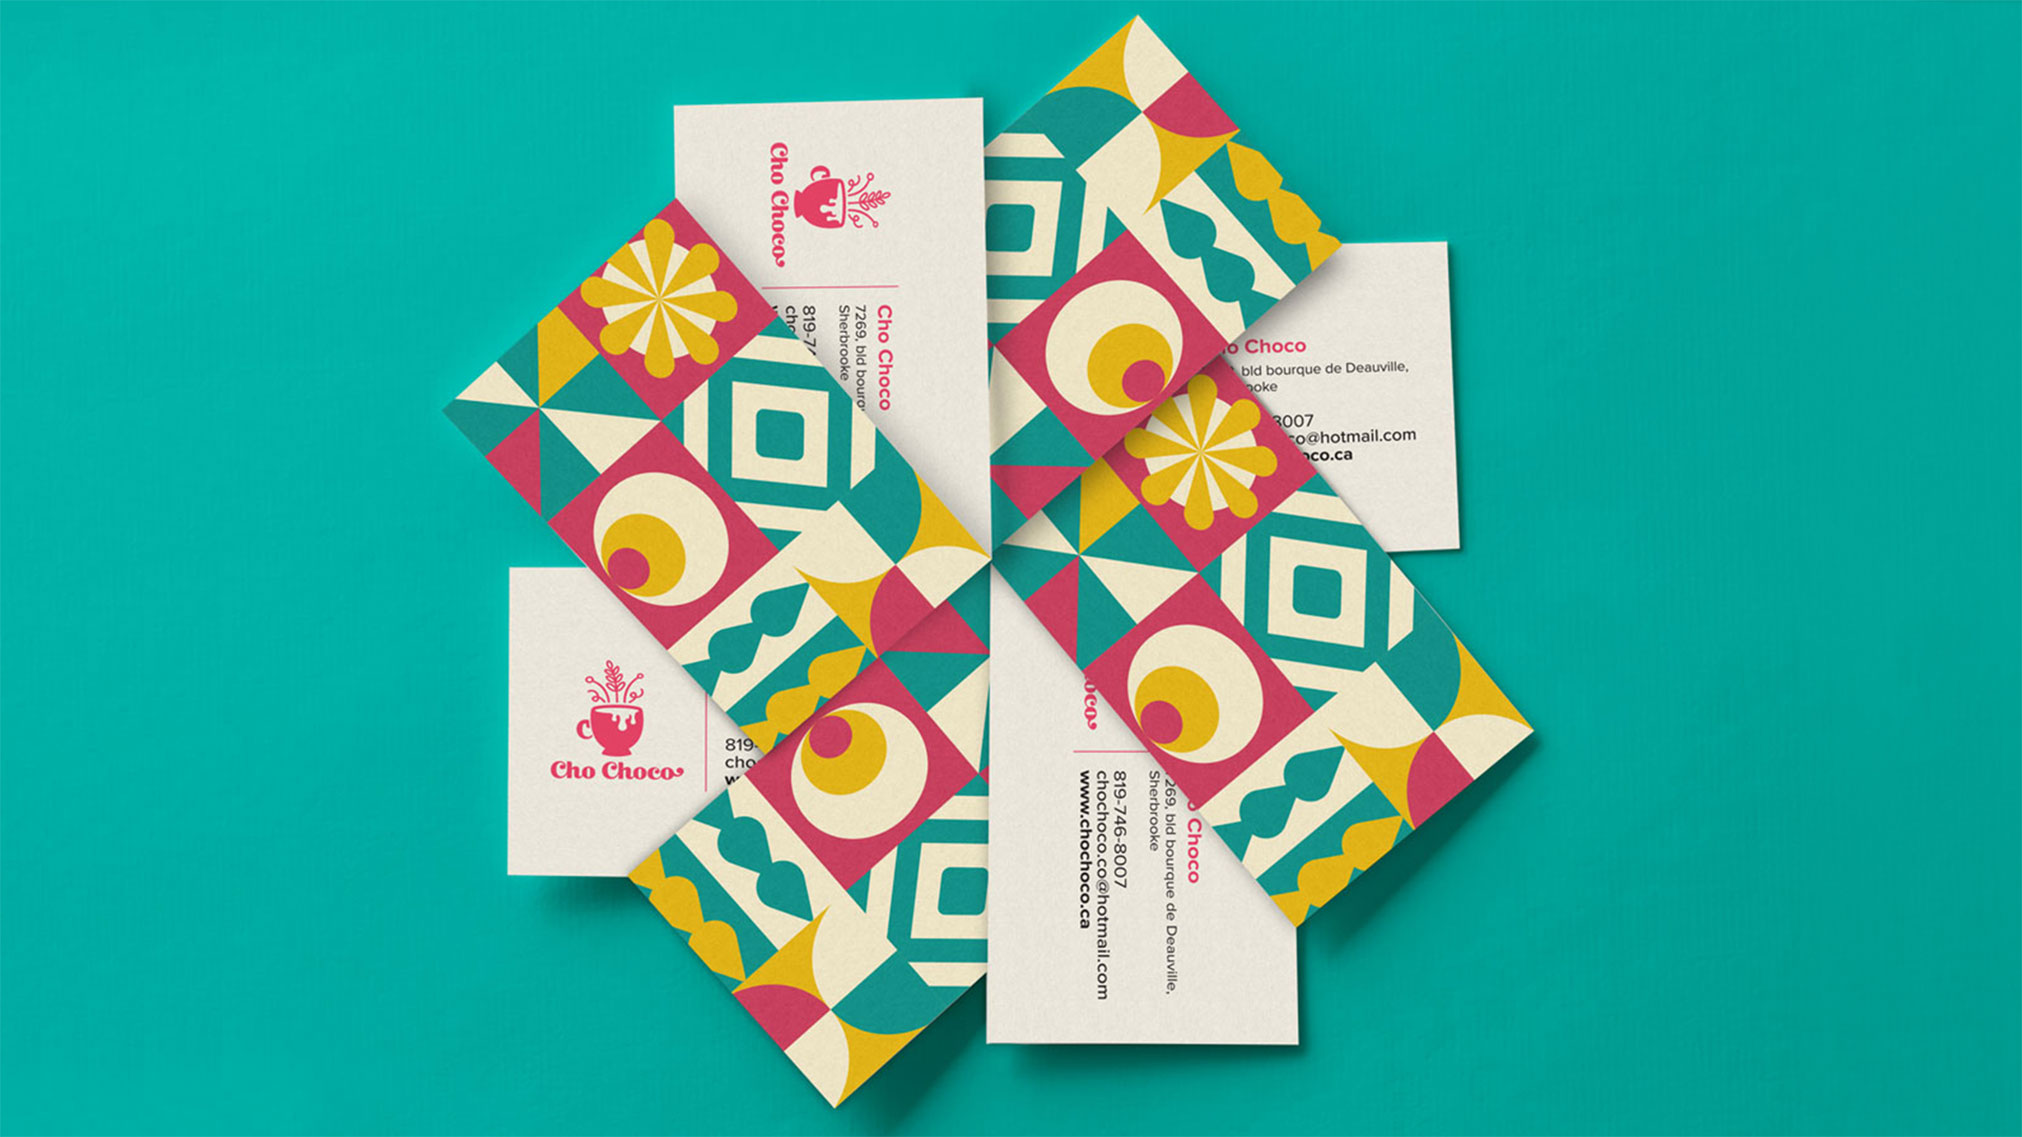 With their growing popularity, Cho Choco's branding was outdated and in need of a new identity. The goal was to give a makeover to the initial brand and give the company a look they would be proud of, while also pleasing the clientele.